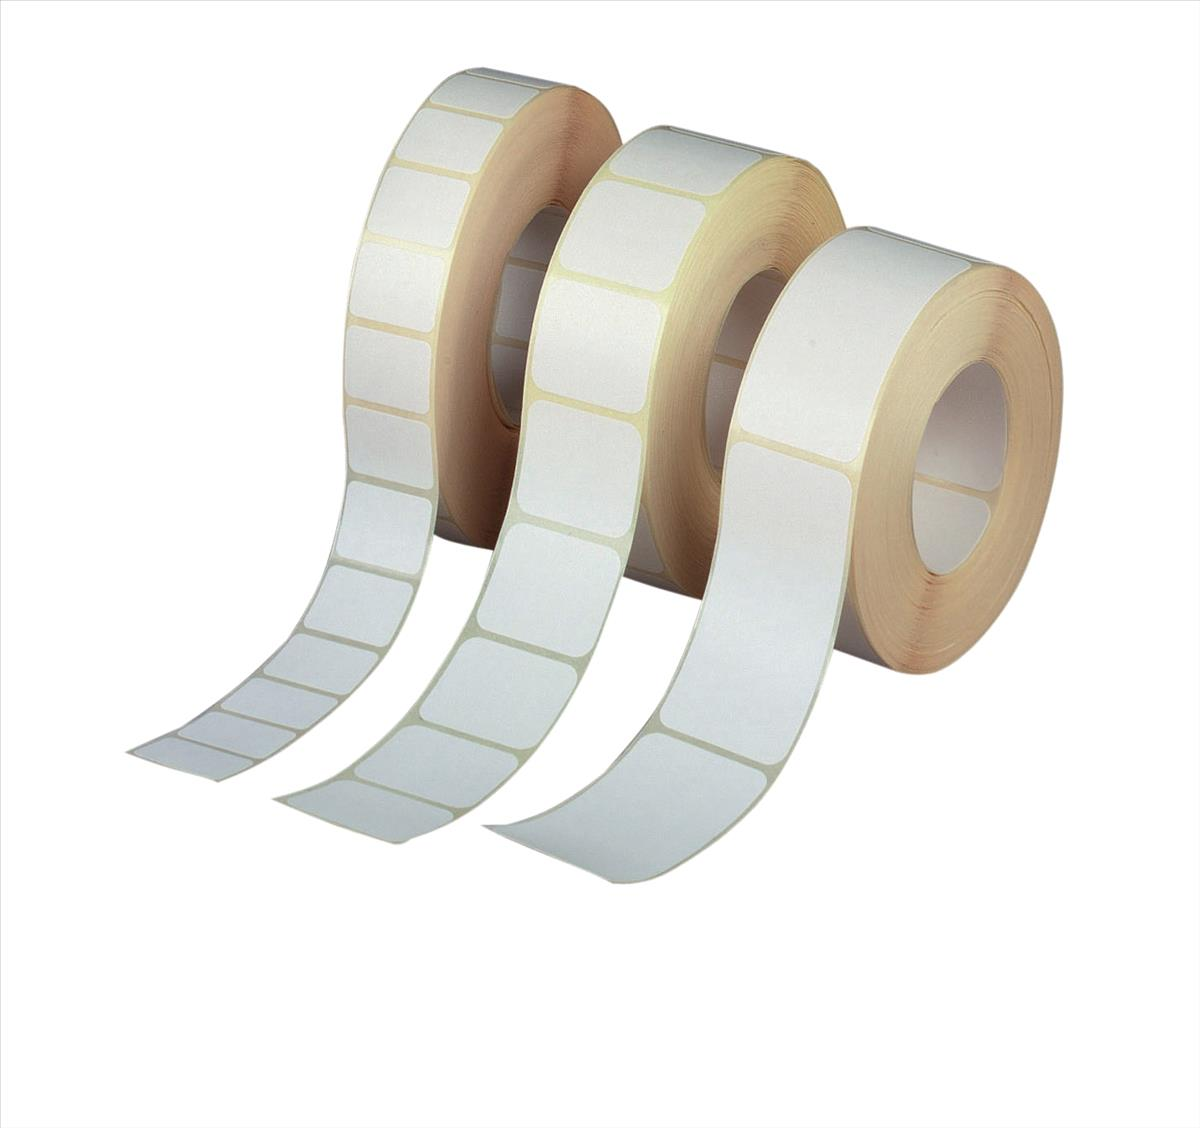 Avery Small Pack White Labels In Dispensers 400 Labels Size 25mmx50mm Code 24-426